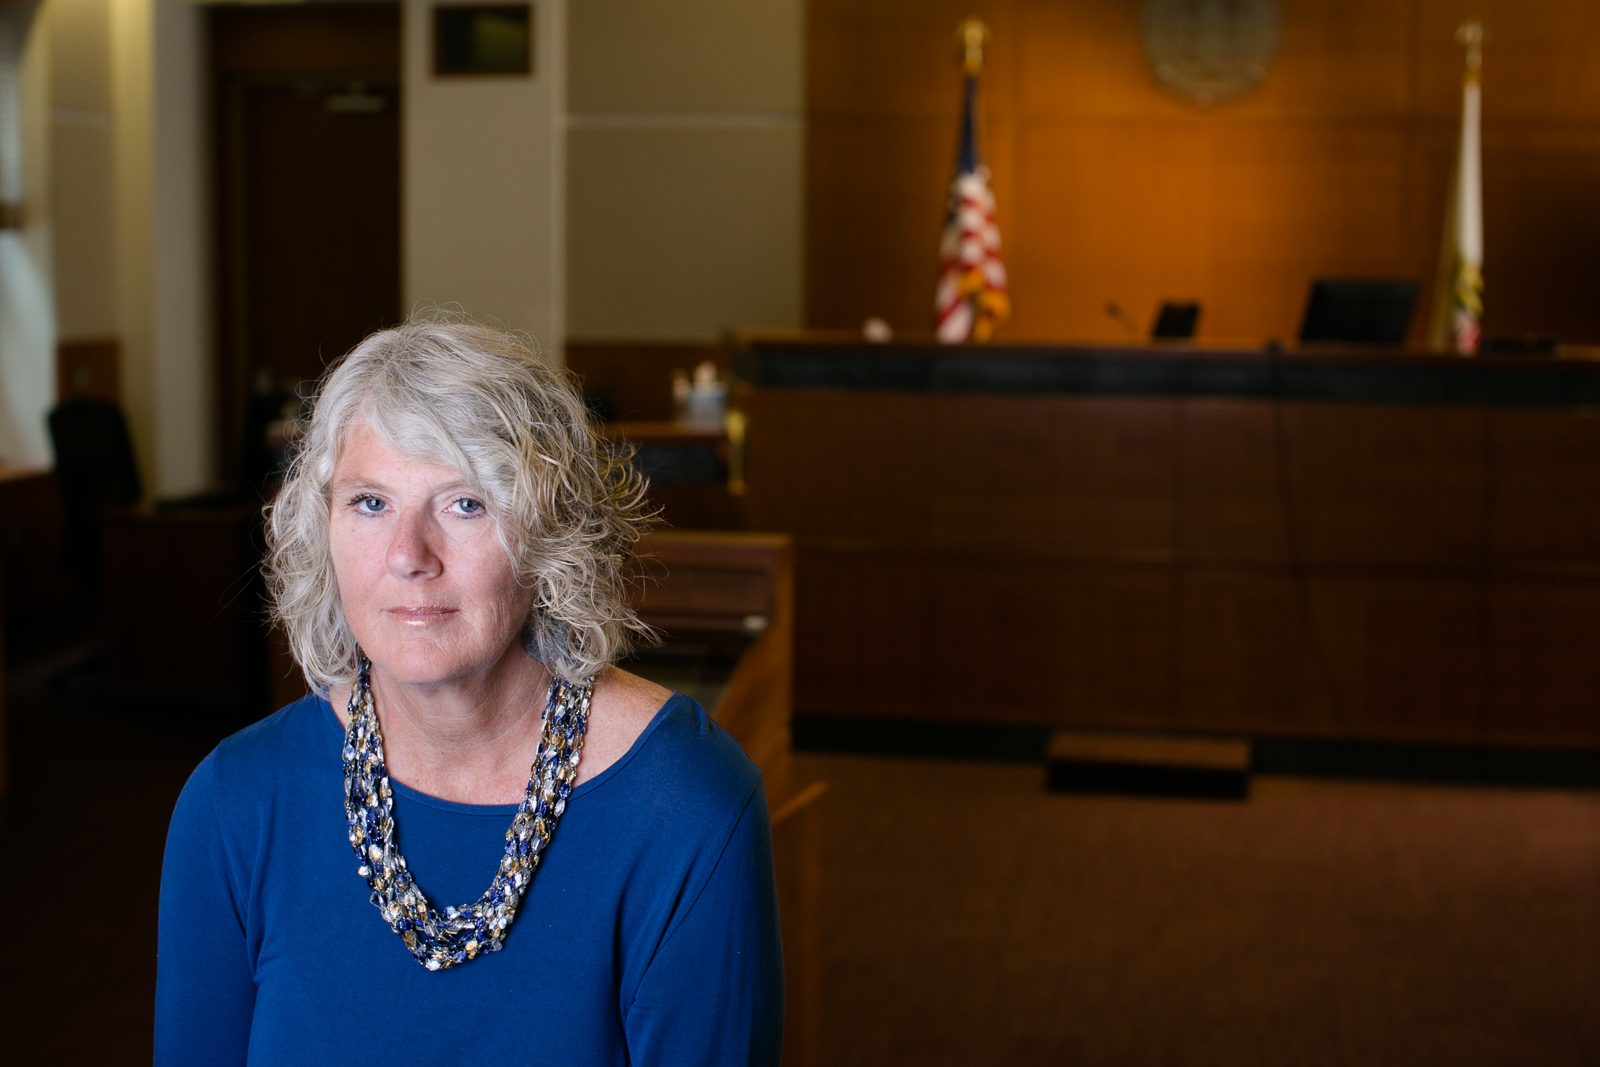 There are currently more than 3,000 drug courts in the United States. The one in Anne Arundel County, Maryland continues to expand to respond to need. Drug Court manager, Paula Fish, explains how it works and why it saves lives.